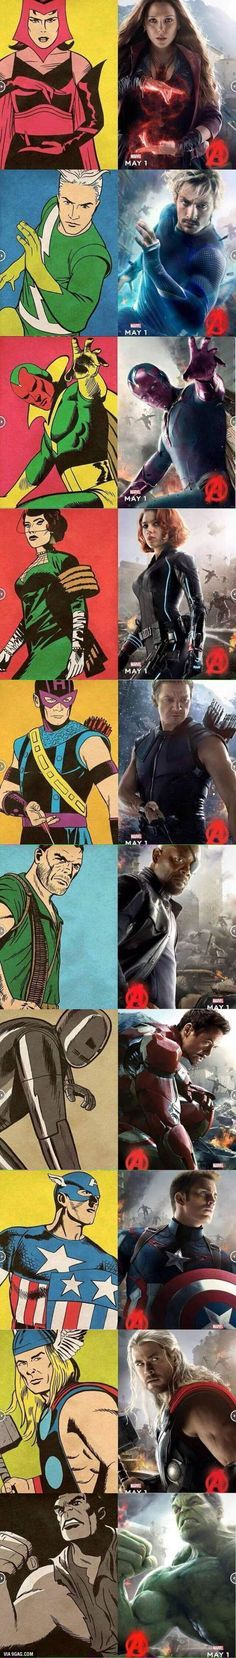 """The 1st time I saw this, I thought, """"oh yeah look old and new pictures of the Marvel characters in AoU."""" Now I'm looking at it and I'm realizing that the new and old characters are in the same poses. Did Marvel dig up poses and match the characters on purpose? If so, I applaud you, Marvel. Still mad at you for Pietro, though. X("""